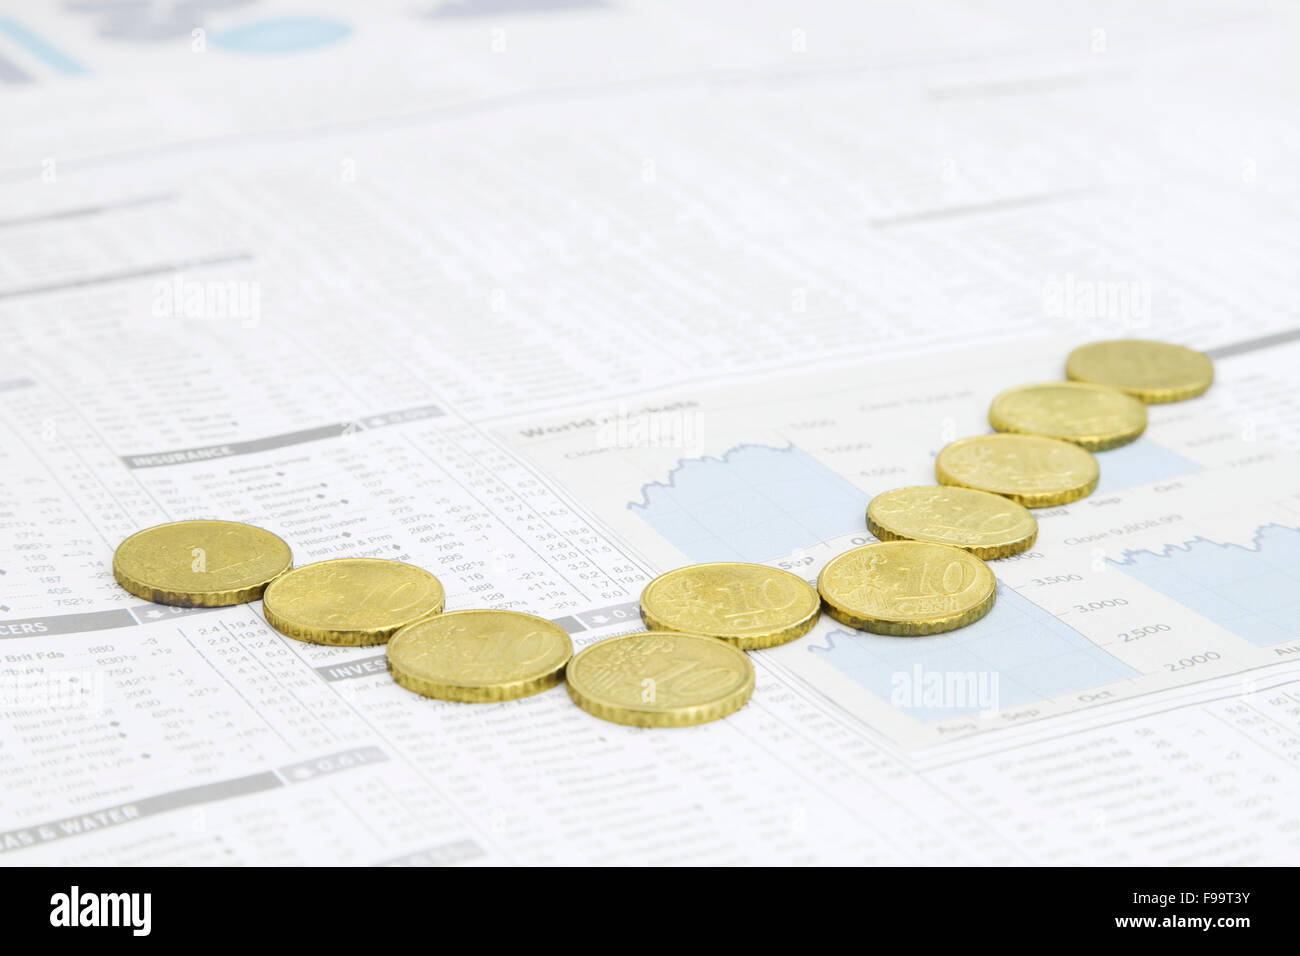 Financial Chart made out of European Union Currency positioned o - Stock Image